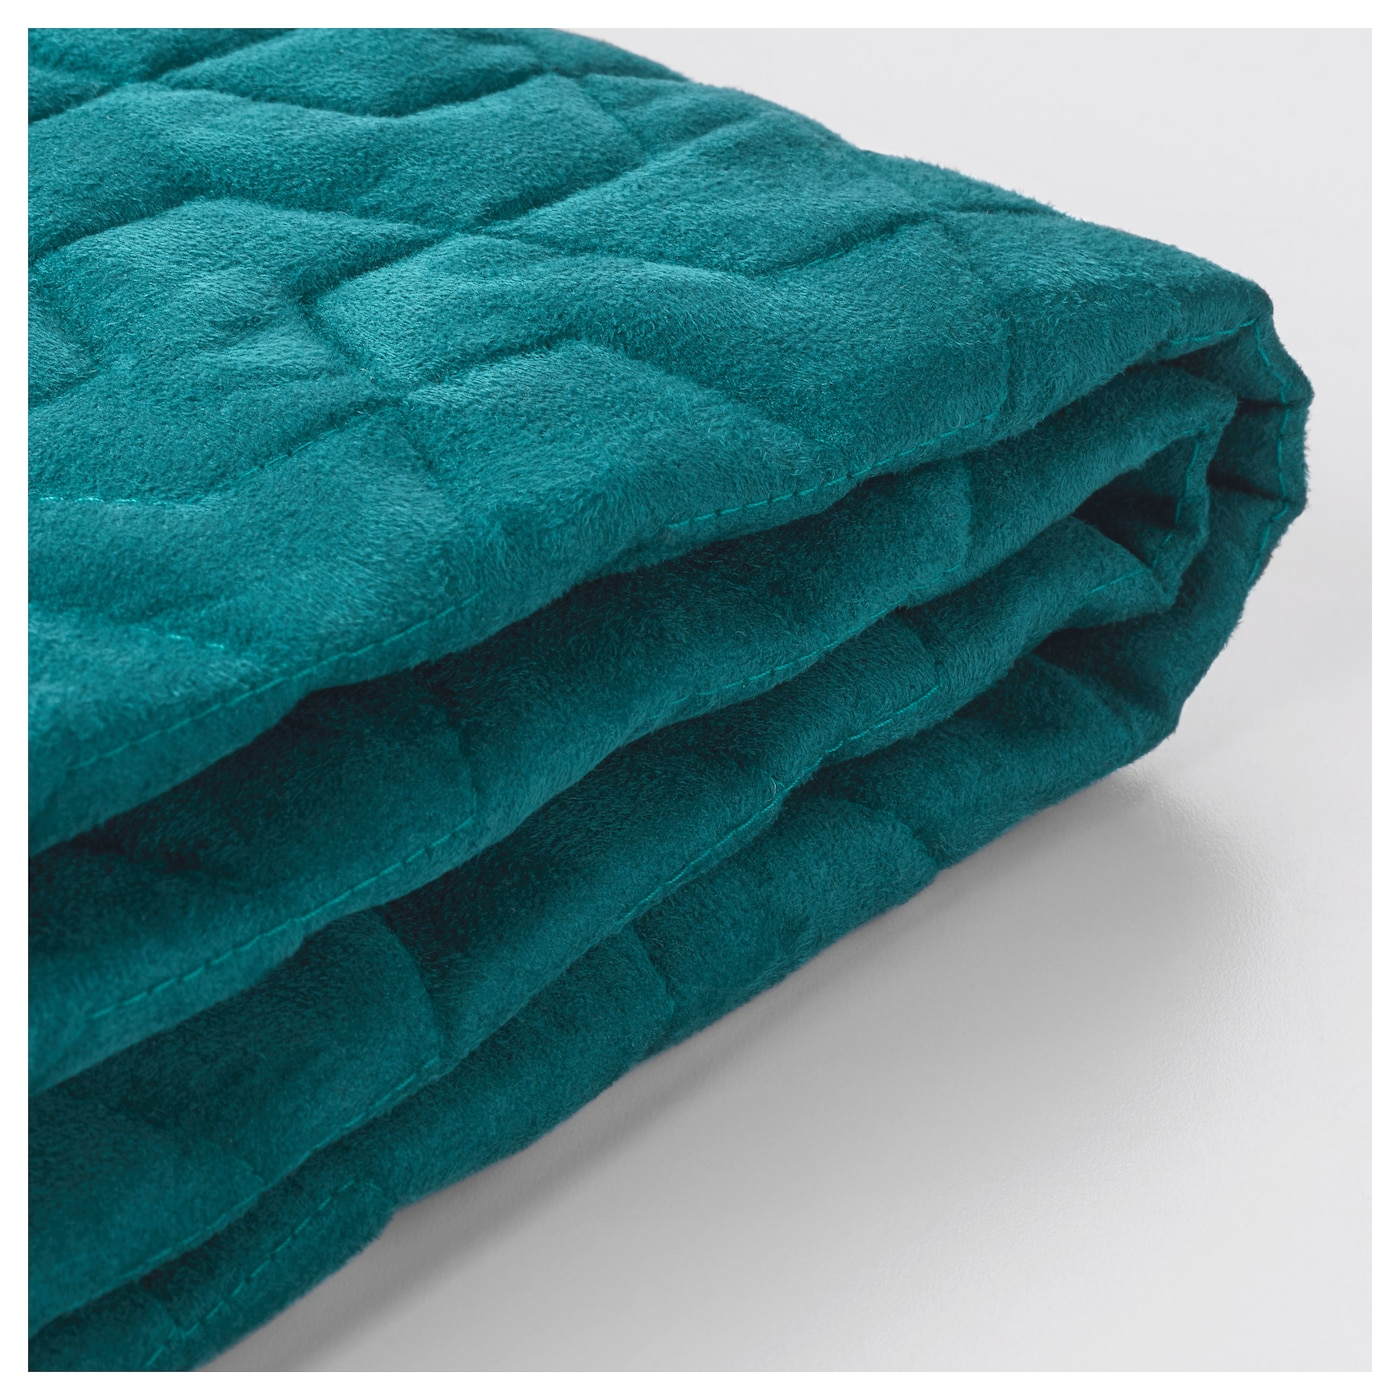 LYCKSELE Chair bed cover Vallarum turquoise IKEA